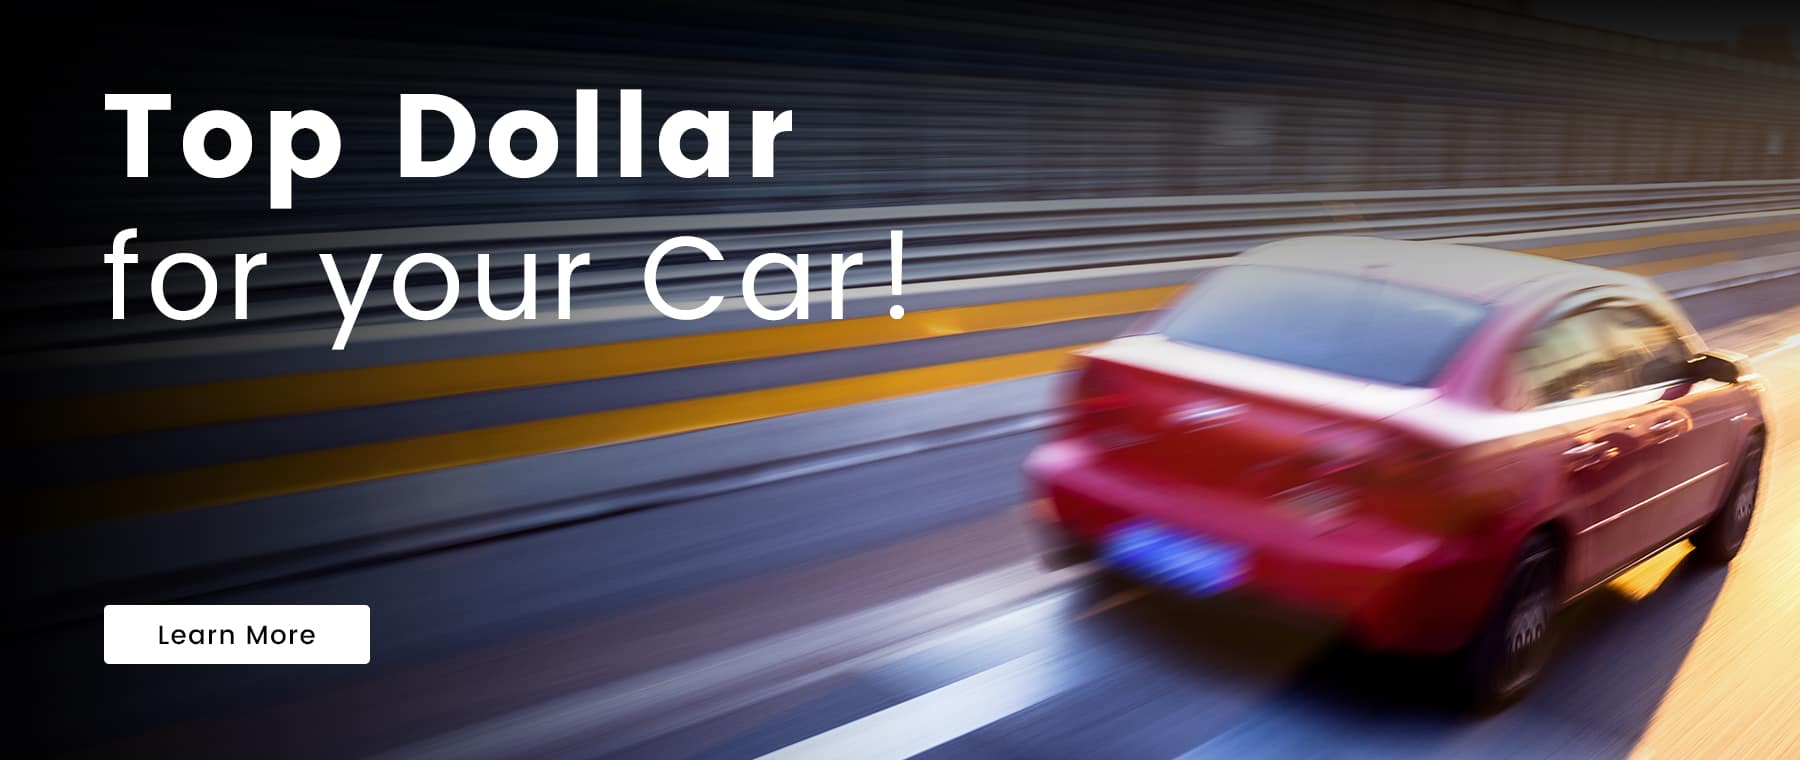 Top Dollar for your Car!